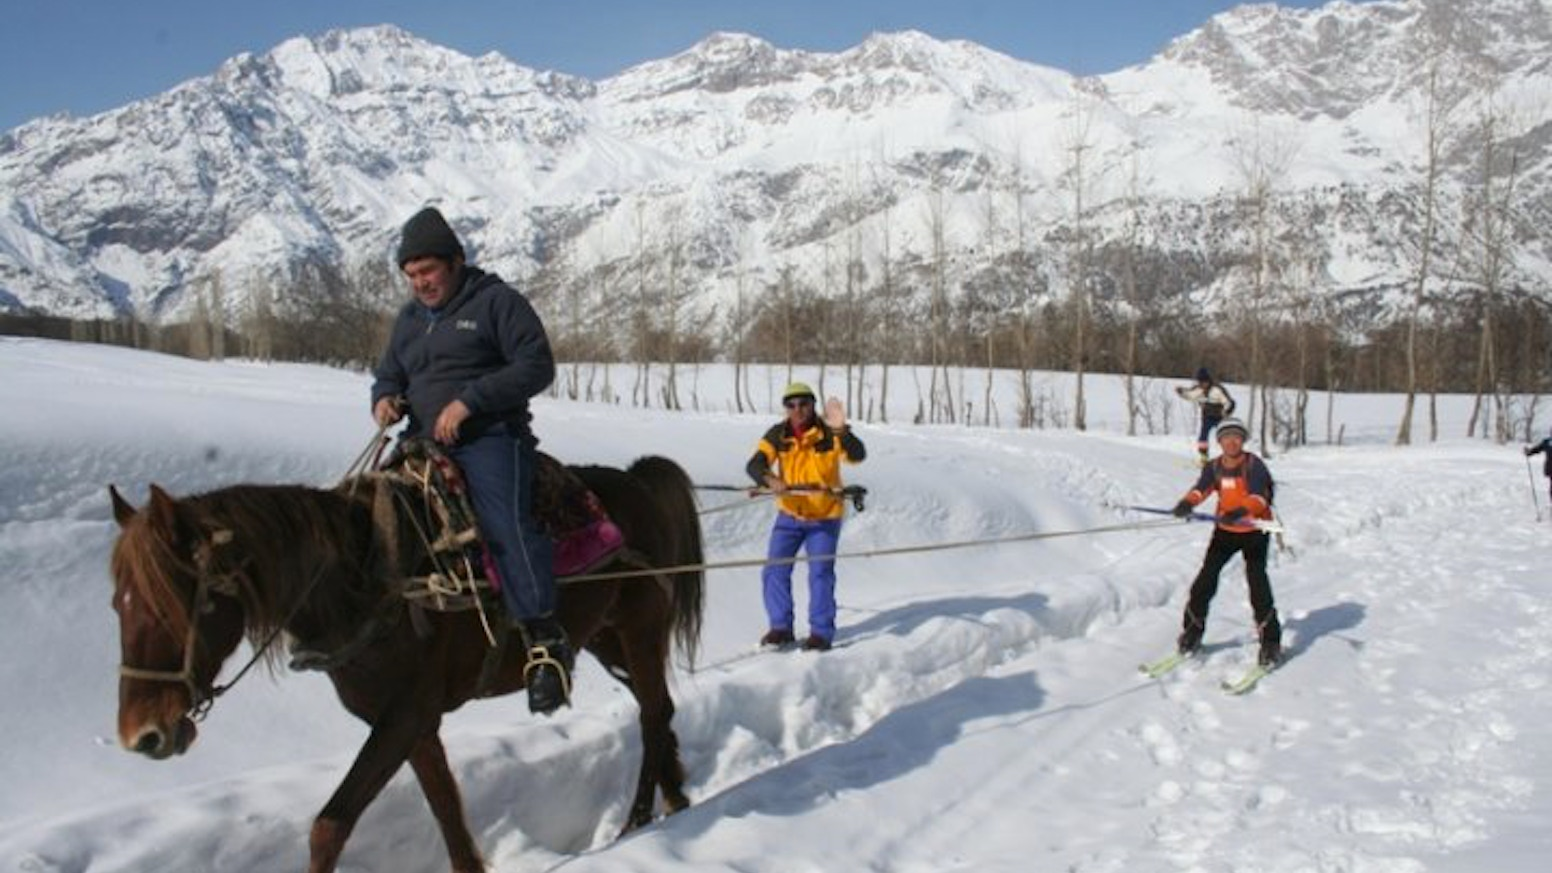 A Kyrgyz man's vision to better his country's economy through ski tourism and his efforts to protect the world's largest walnut forest.